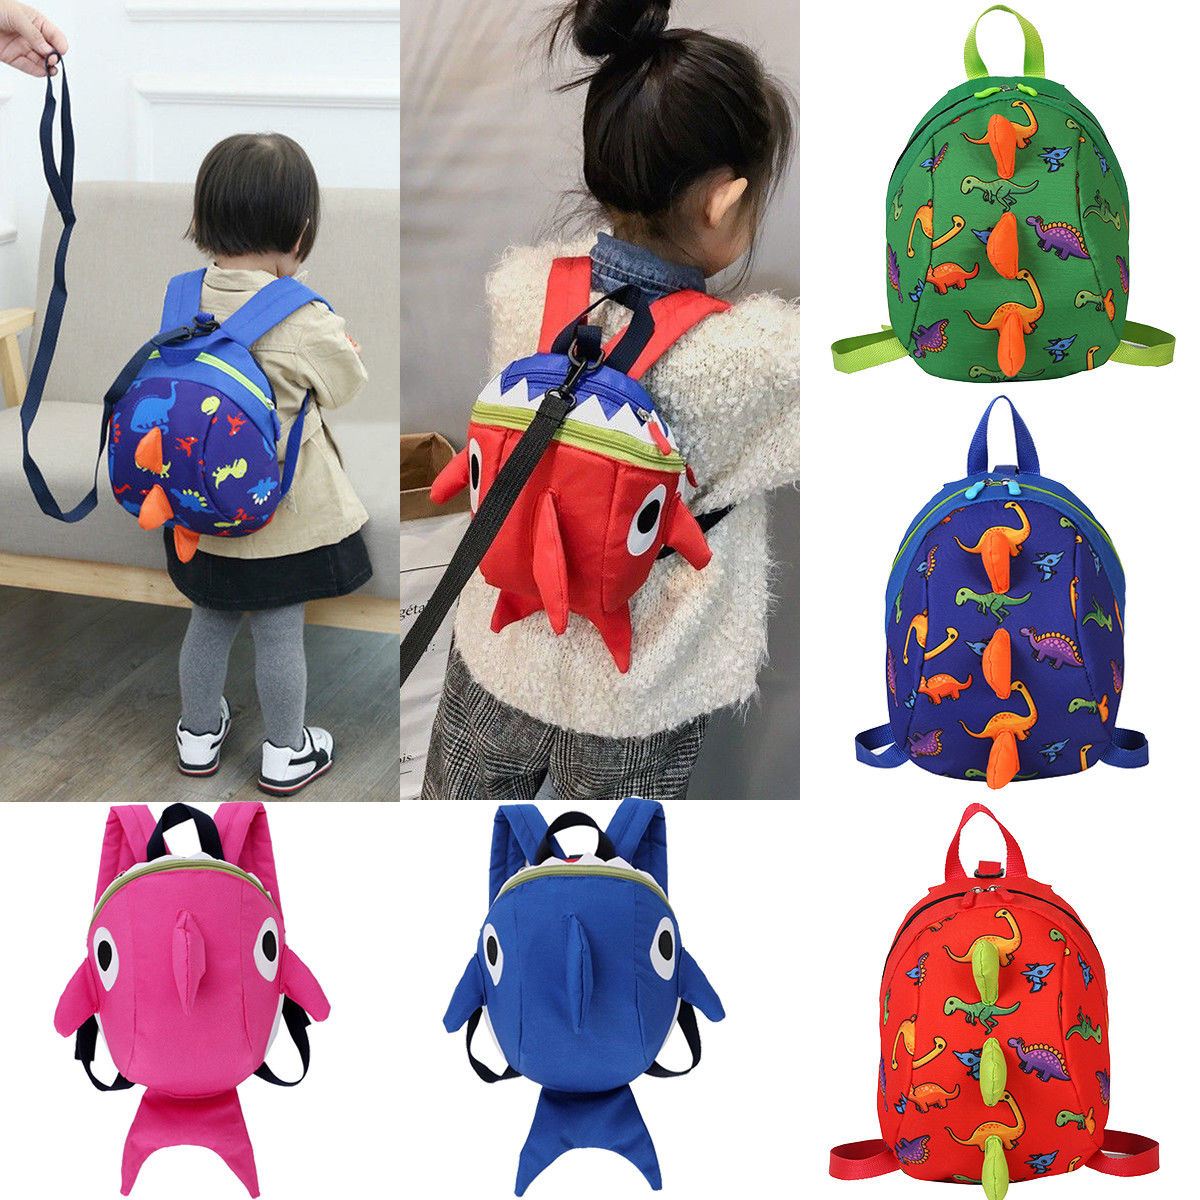 Kids Baby Safety Harness Backpack Leash Toddler Anti-lost Dinosaur Shark Bag Cute Children Backpacks